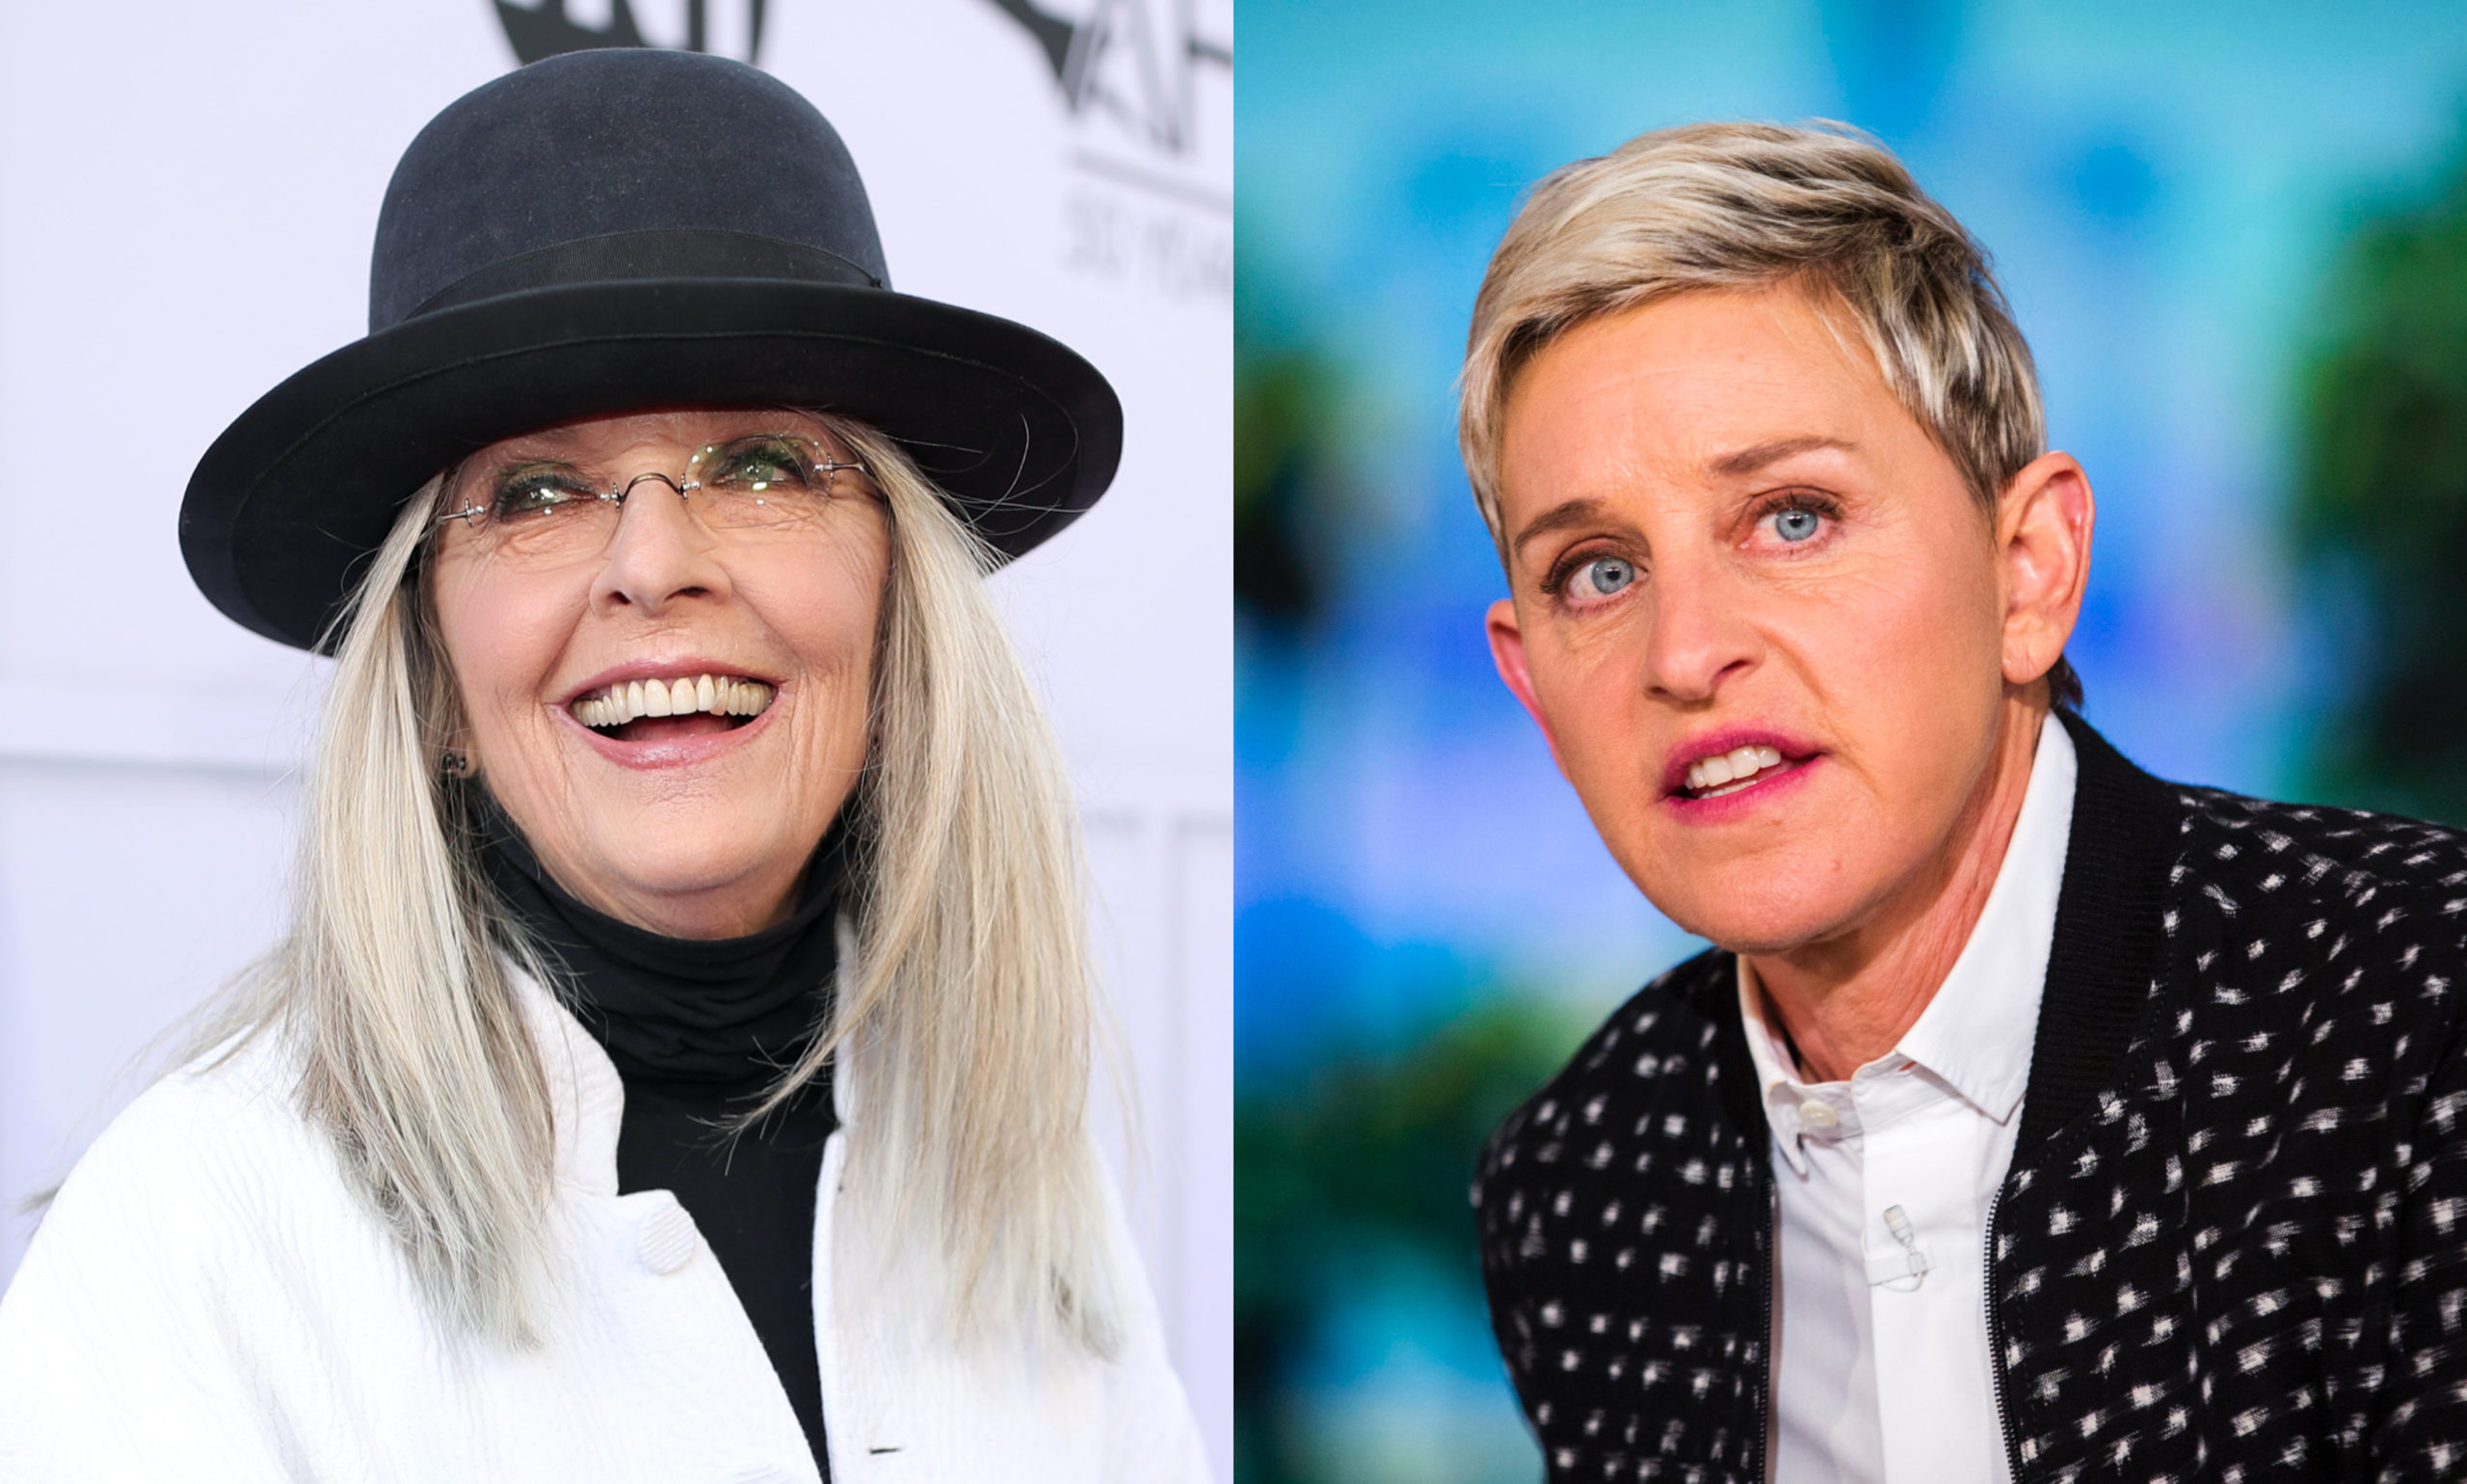 Diane Keaton insists Ellen DeGeneres set 'exudes happiness and gratitude' while missing the blatantly obvious